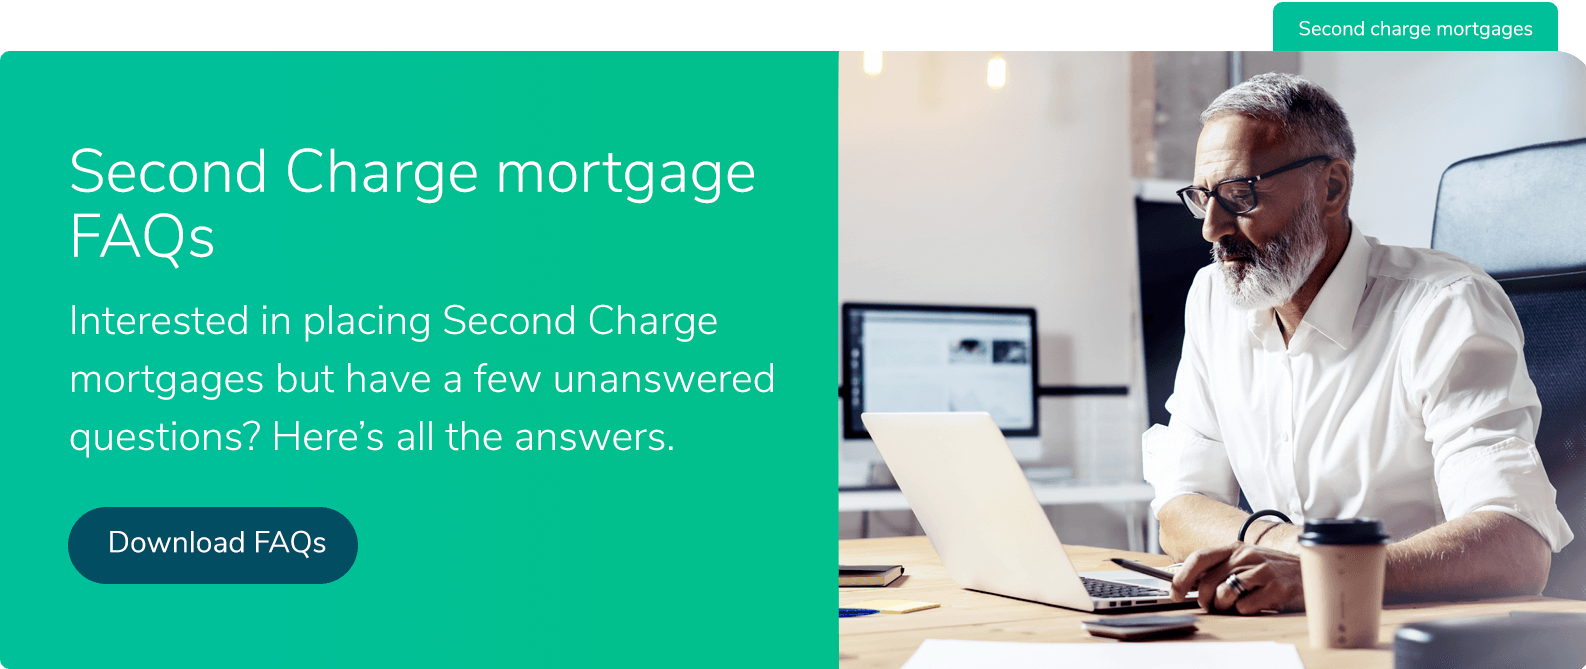 Second charge mortgage FAQs